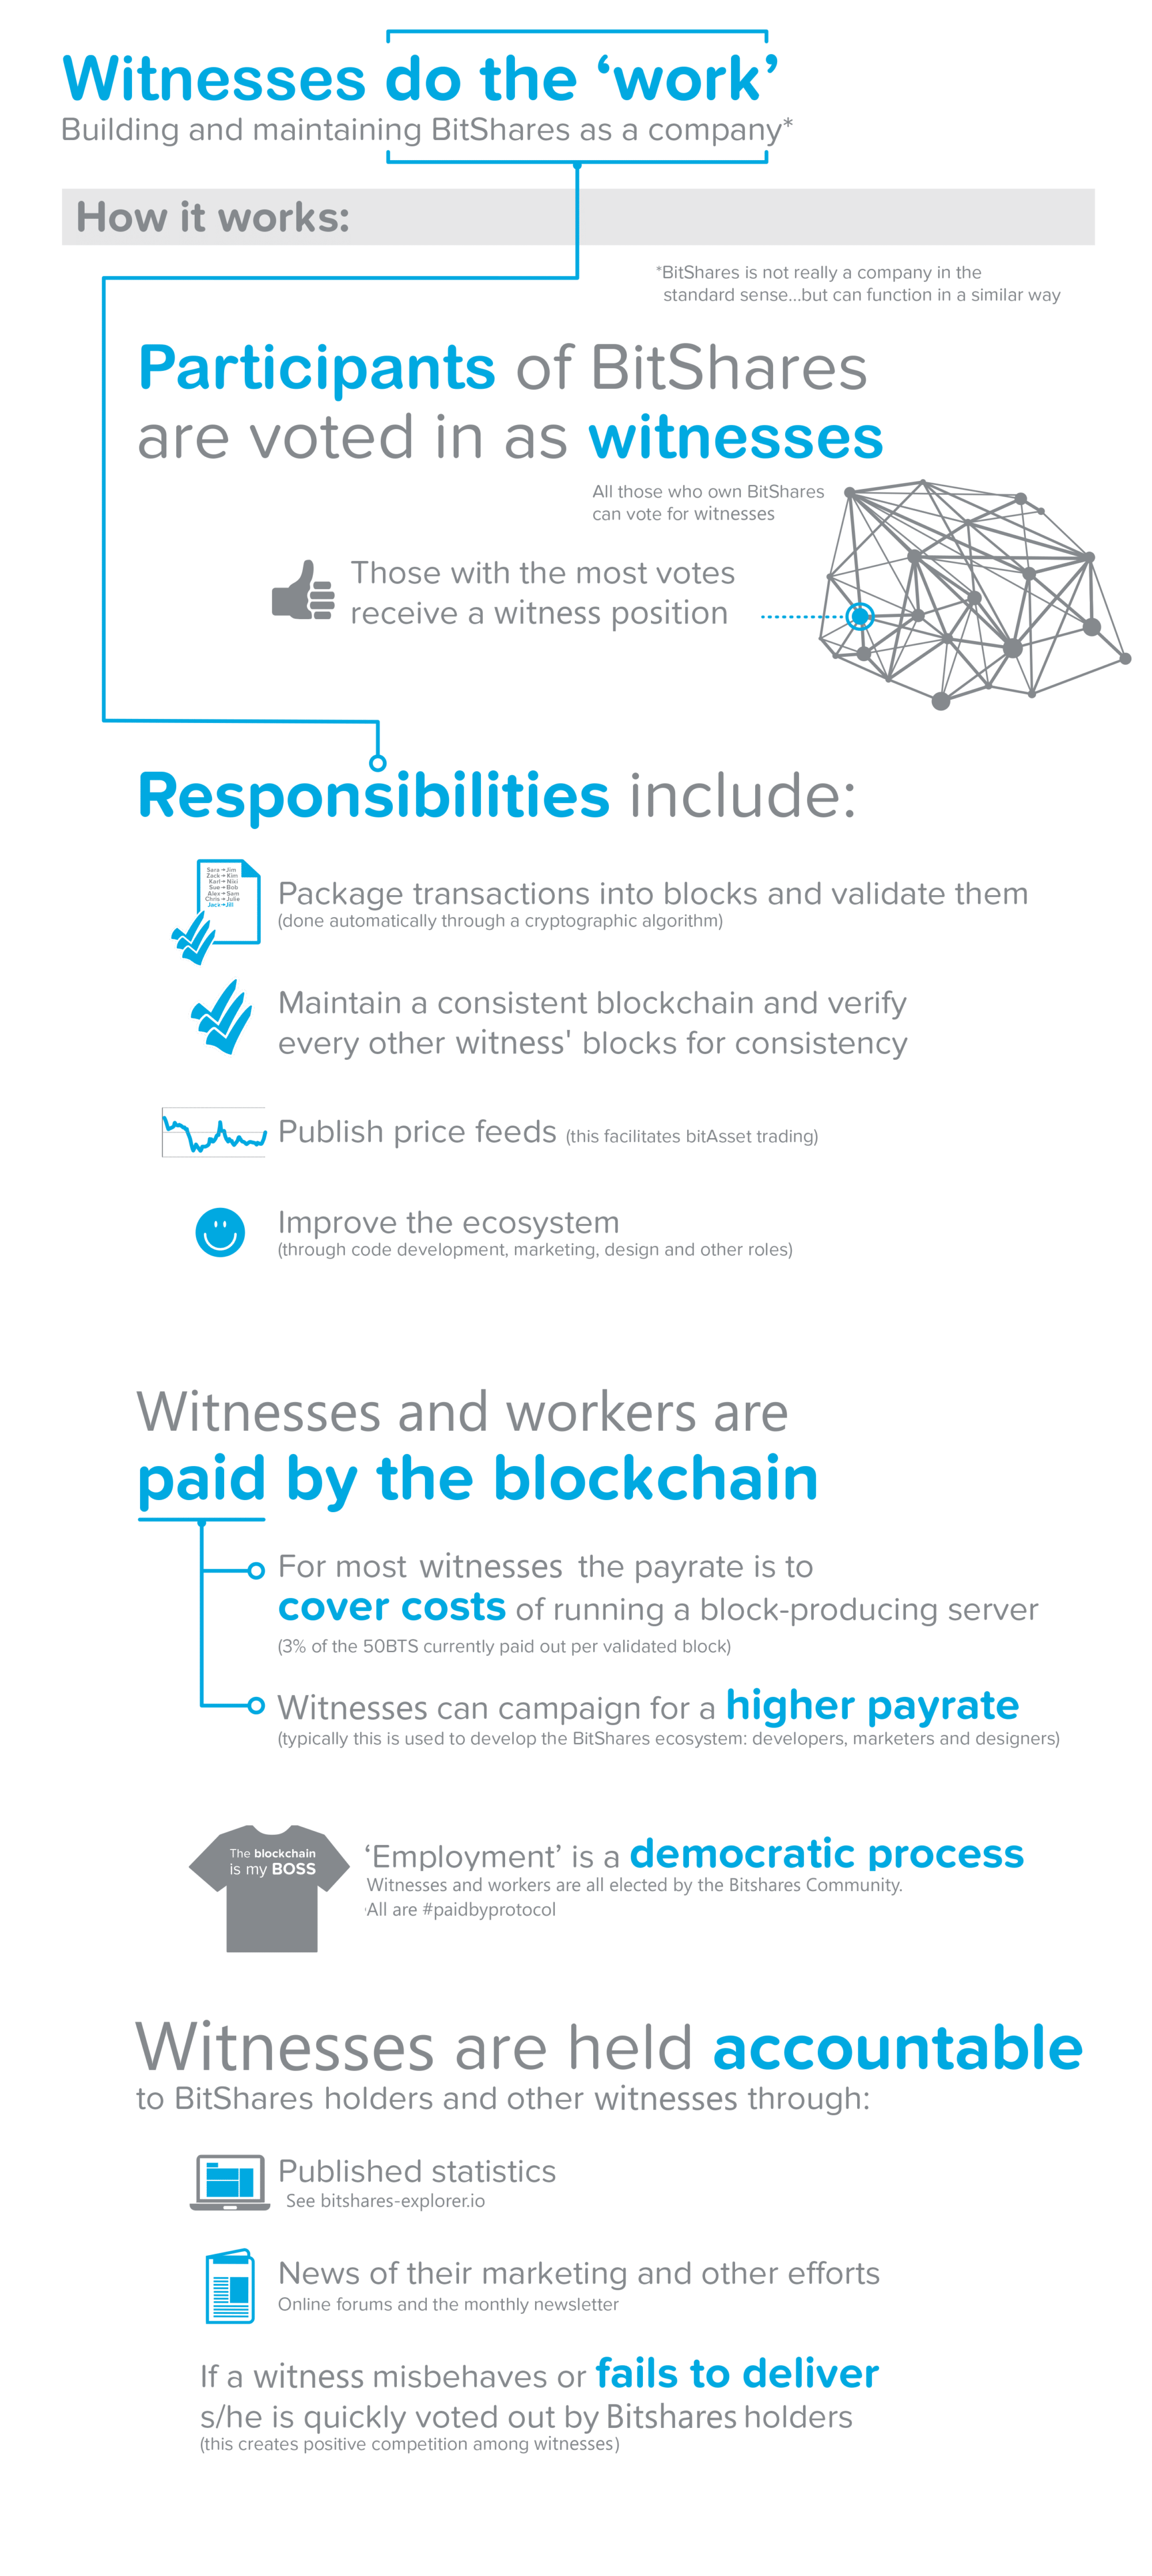 """Committees   Committee members are responsible for adjusting the fee schedule of transactions to ensure they remain at a low level as the price of BTS rises. To be elected, the protocol calculates the difference between up and down votes for each Committee Member. (Similar to Reddit post voting) Then, the median of top rated users will become Committee Members.   Code acts as a channel to submit proposals, contribute value and earn BitShares   You can set up a """"worker"""", a specific BTS account, to propose work for the BitShares network.You would include a scope of work, start/end dates and your pay rate which would be sent to the network of BTS token holders. They receive and vote on the proposal which can be accepted or rejected by the network. A counteroffer (like with requested pay rate) can also be issued back to the initial user proposing.   BitShares shares network fees among members   BitShares offers membership subscriptions which provide a """"lifetime"""" membership of reduced fees for using the BitShares rails. In addition, there is a referral program for members that is one level deep which allows them to receive reduced fees and a percentage of the fees that are paid by those they refer.   Problems and Risks   Sounds great, but what about the downfalls? There's always something…   The collateral risk of a """"black swan event"""" (sudden crash in value)   Market pegged assets track the price of real assets through a crypto derivative that's backed by collateral with established market value. Ultimately all bitAssets are denominated and collateralized by BitShares (BTS). This token is not immune from price action including drastic drops in value.  Although there's a built-in construct to trigger margin calls (selling out positions to cover original principal), it's isn't foolproof. The biggest risk is the value drops too quickly and collateral can no longer purchase the asset. Sort of like if a home drops in value below the total loan due to a market downturn.  While"""